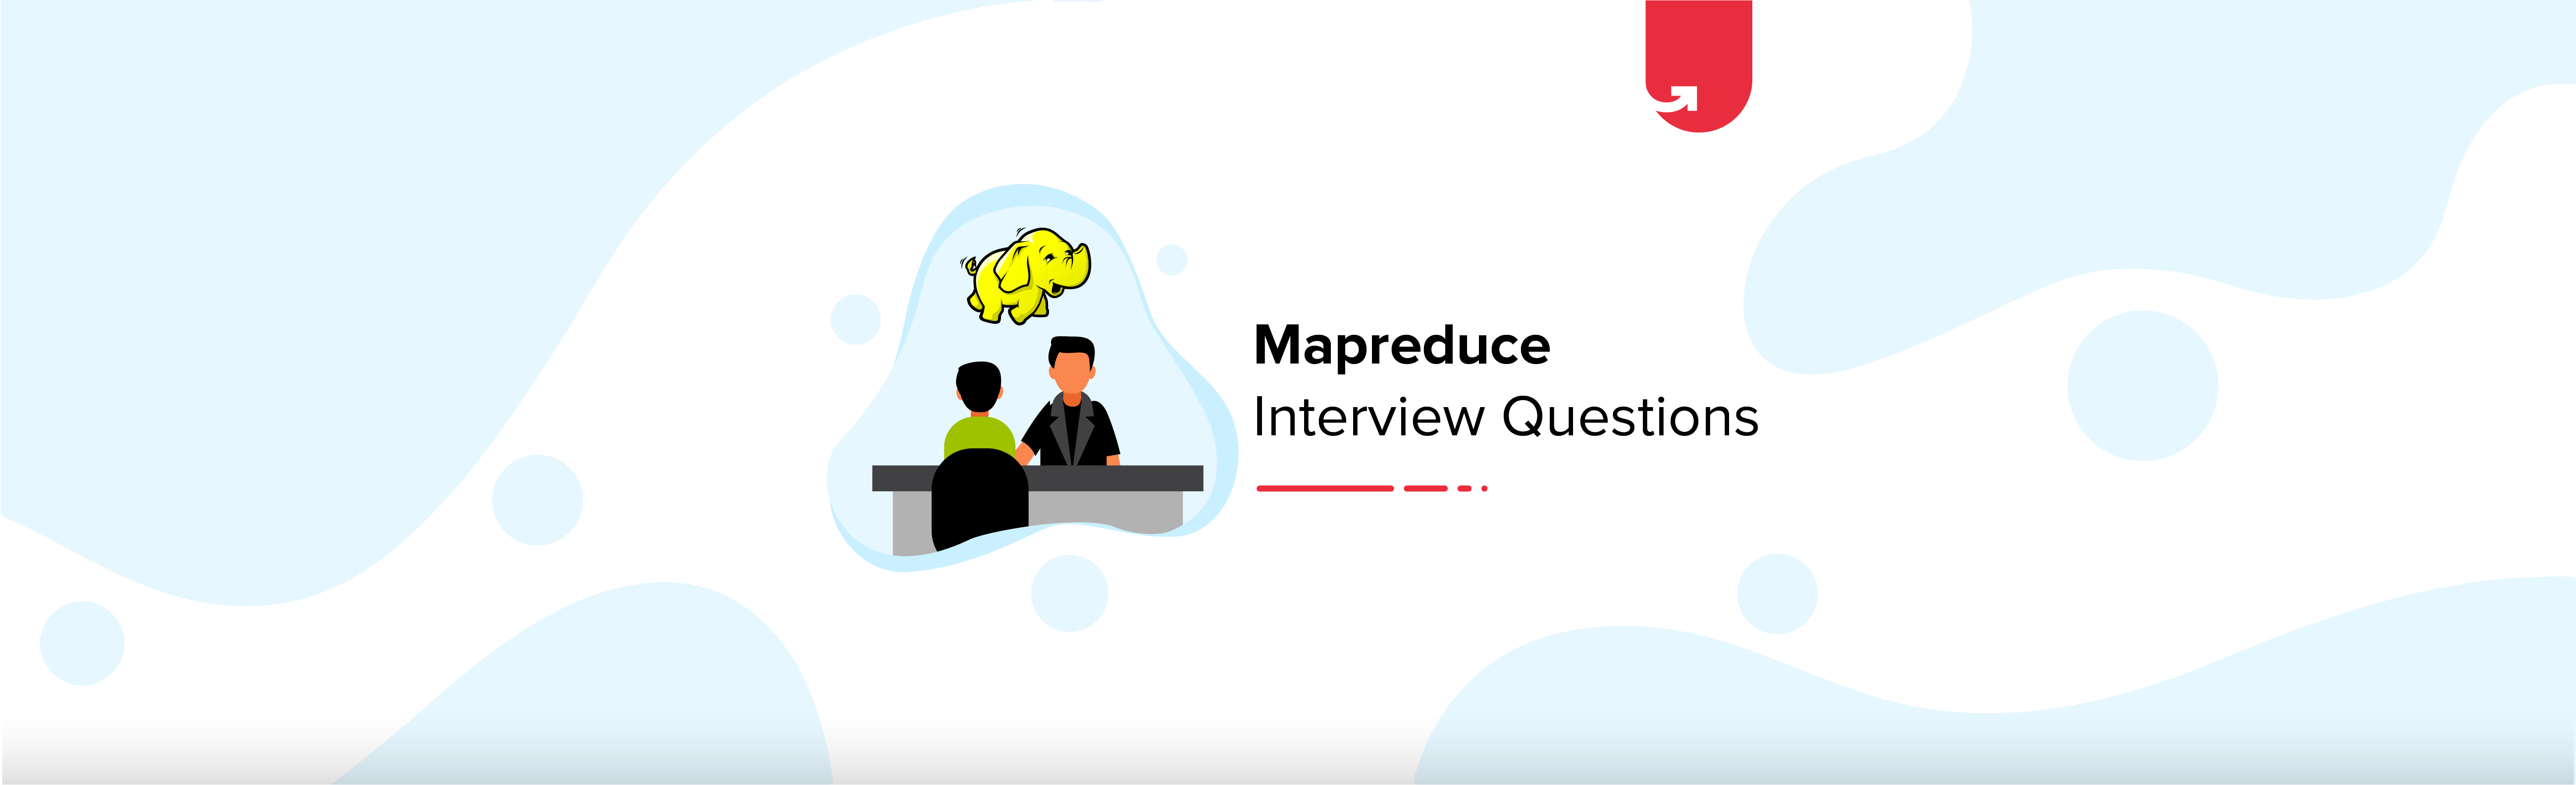 Top 15 Mapreduce Interview Questions And Answers For Beginners Experienced Upgrad Blog